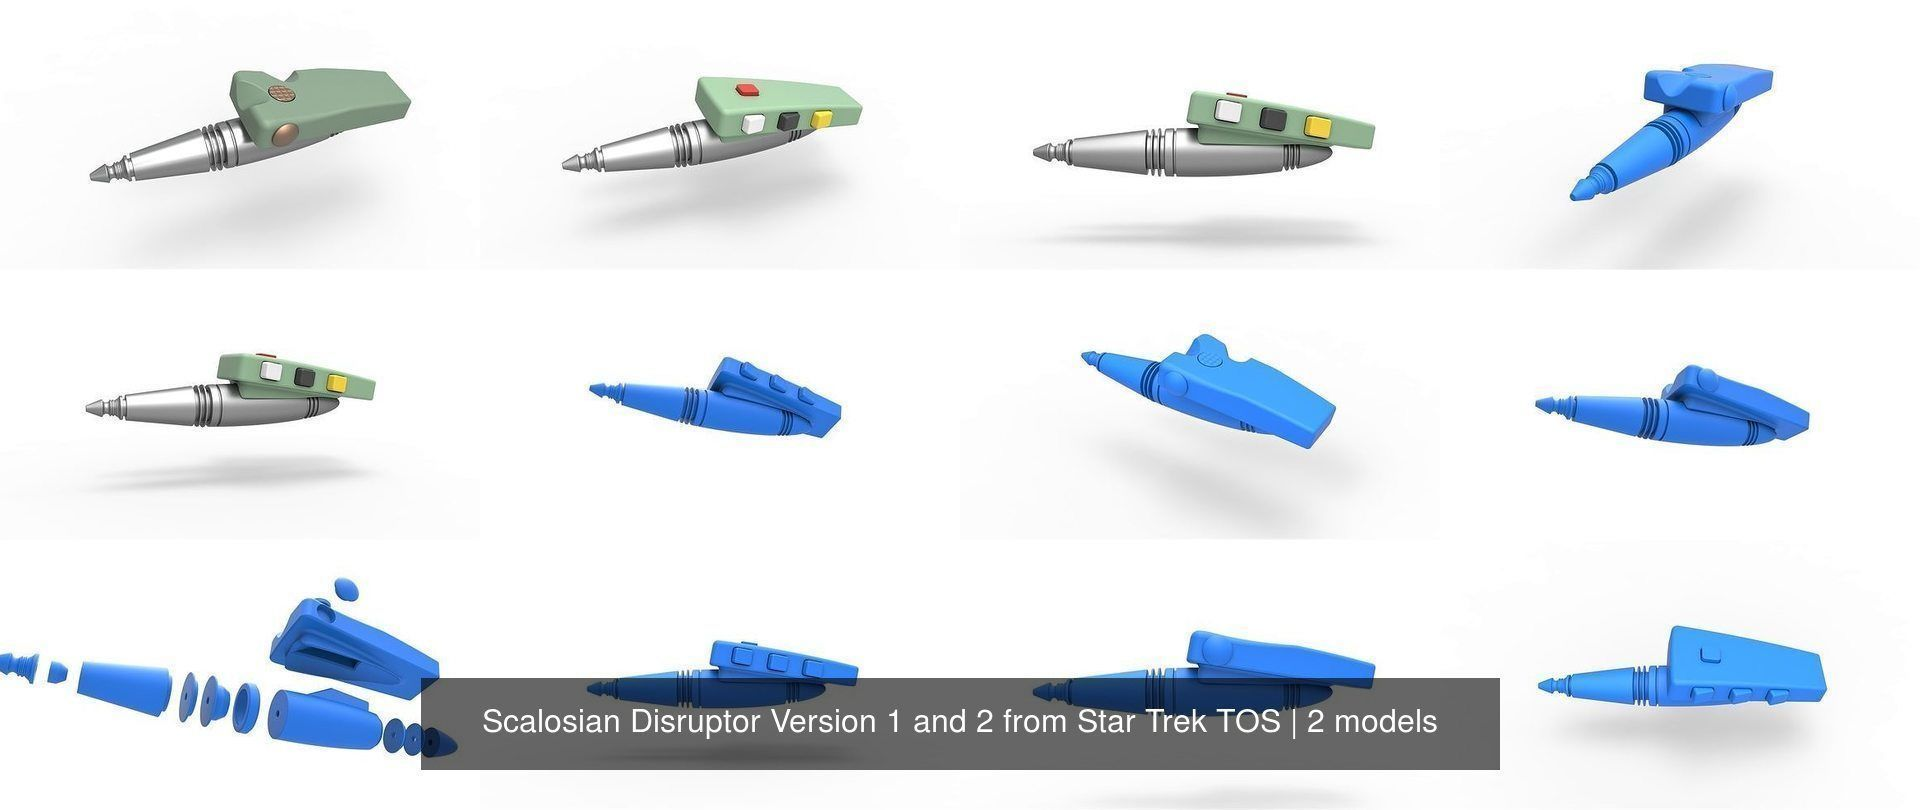 Scalosian Disruptor Version 1 and 2 from Star Trek TOS